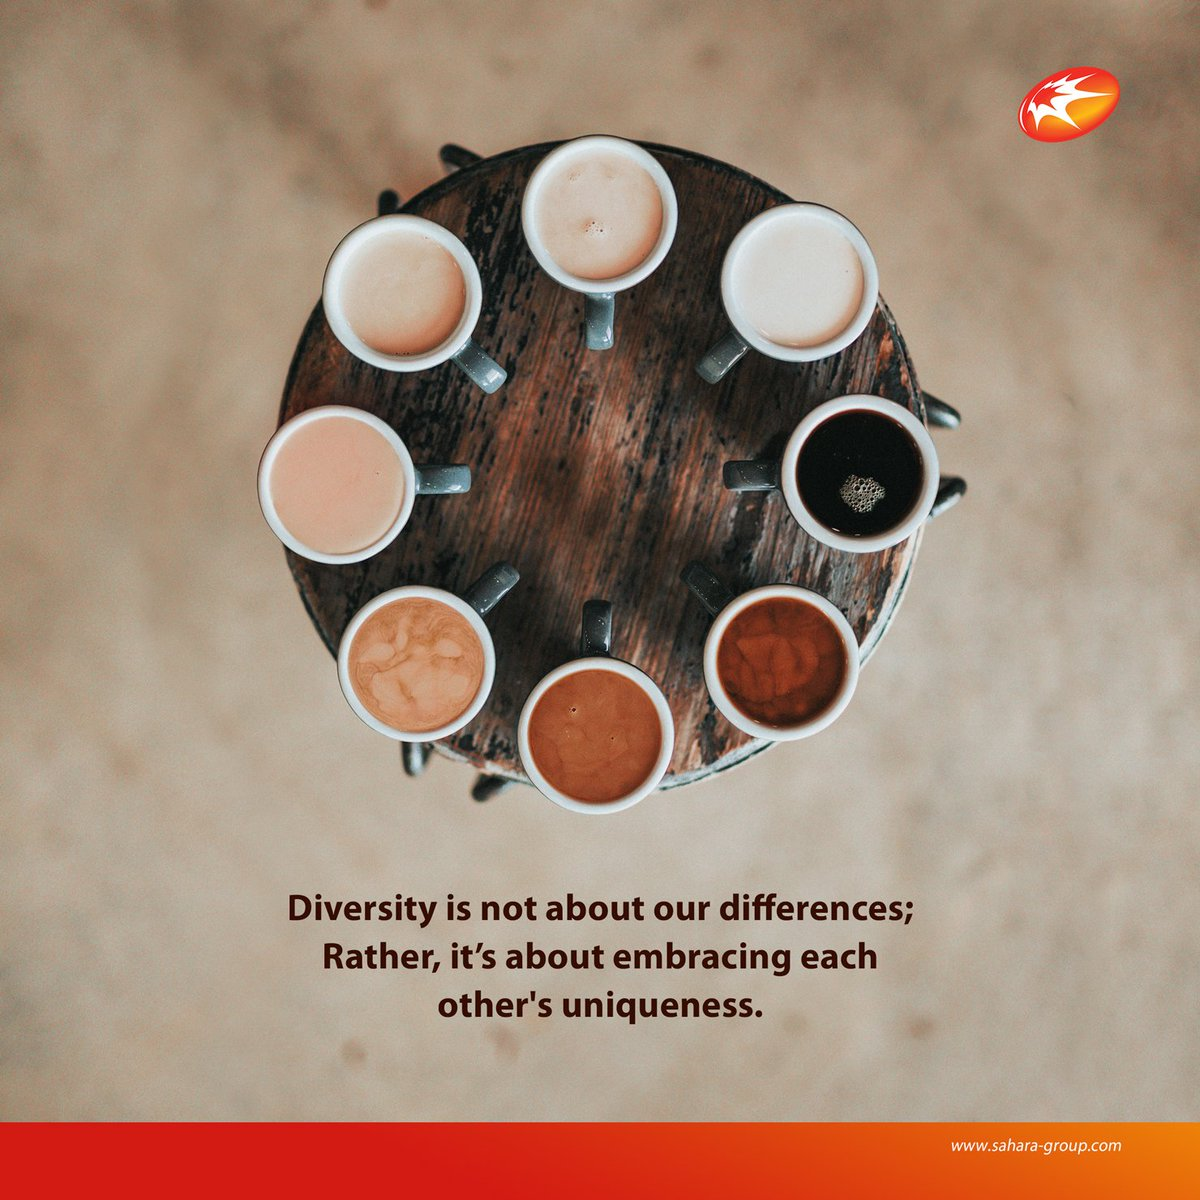 #DiversityMonth #MondayMotivation   #Diversity is not about our differences; Rather, it's about embracing each other&#39;s uniqueness.  #WeAreSahara  #BringingEnergyToLife <br>http://pic.twitter.com/rxdmDpB7dq